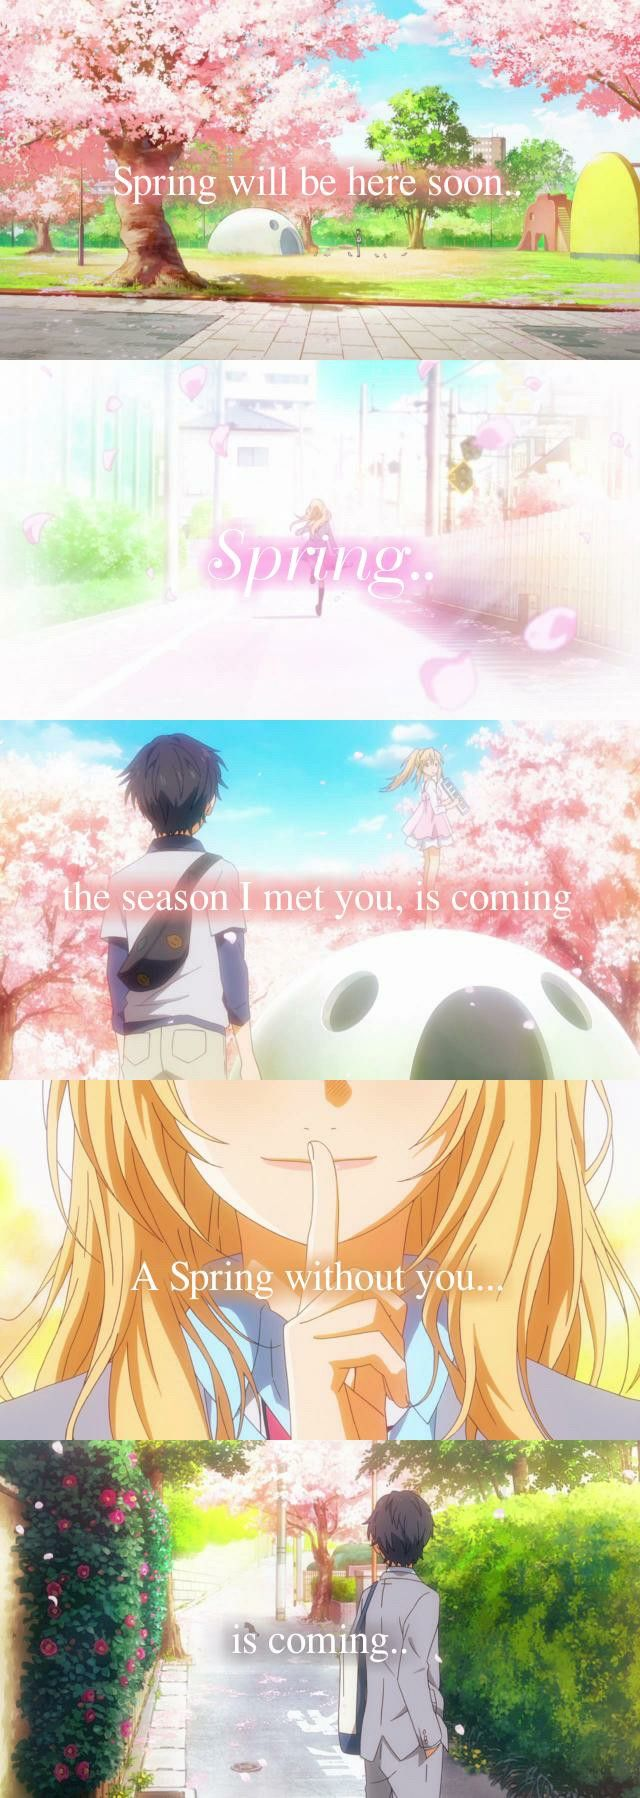 Anime: Shigatsu wa kimi no uso - Your lie in April Source: http://karunase.tumblr.com